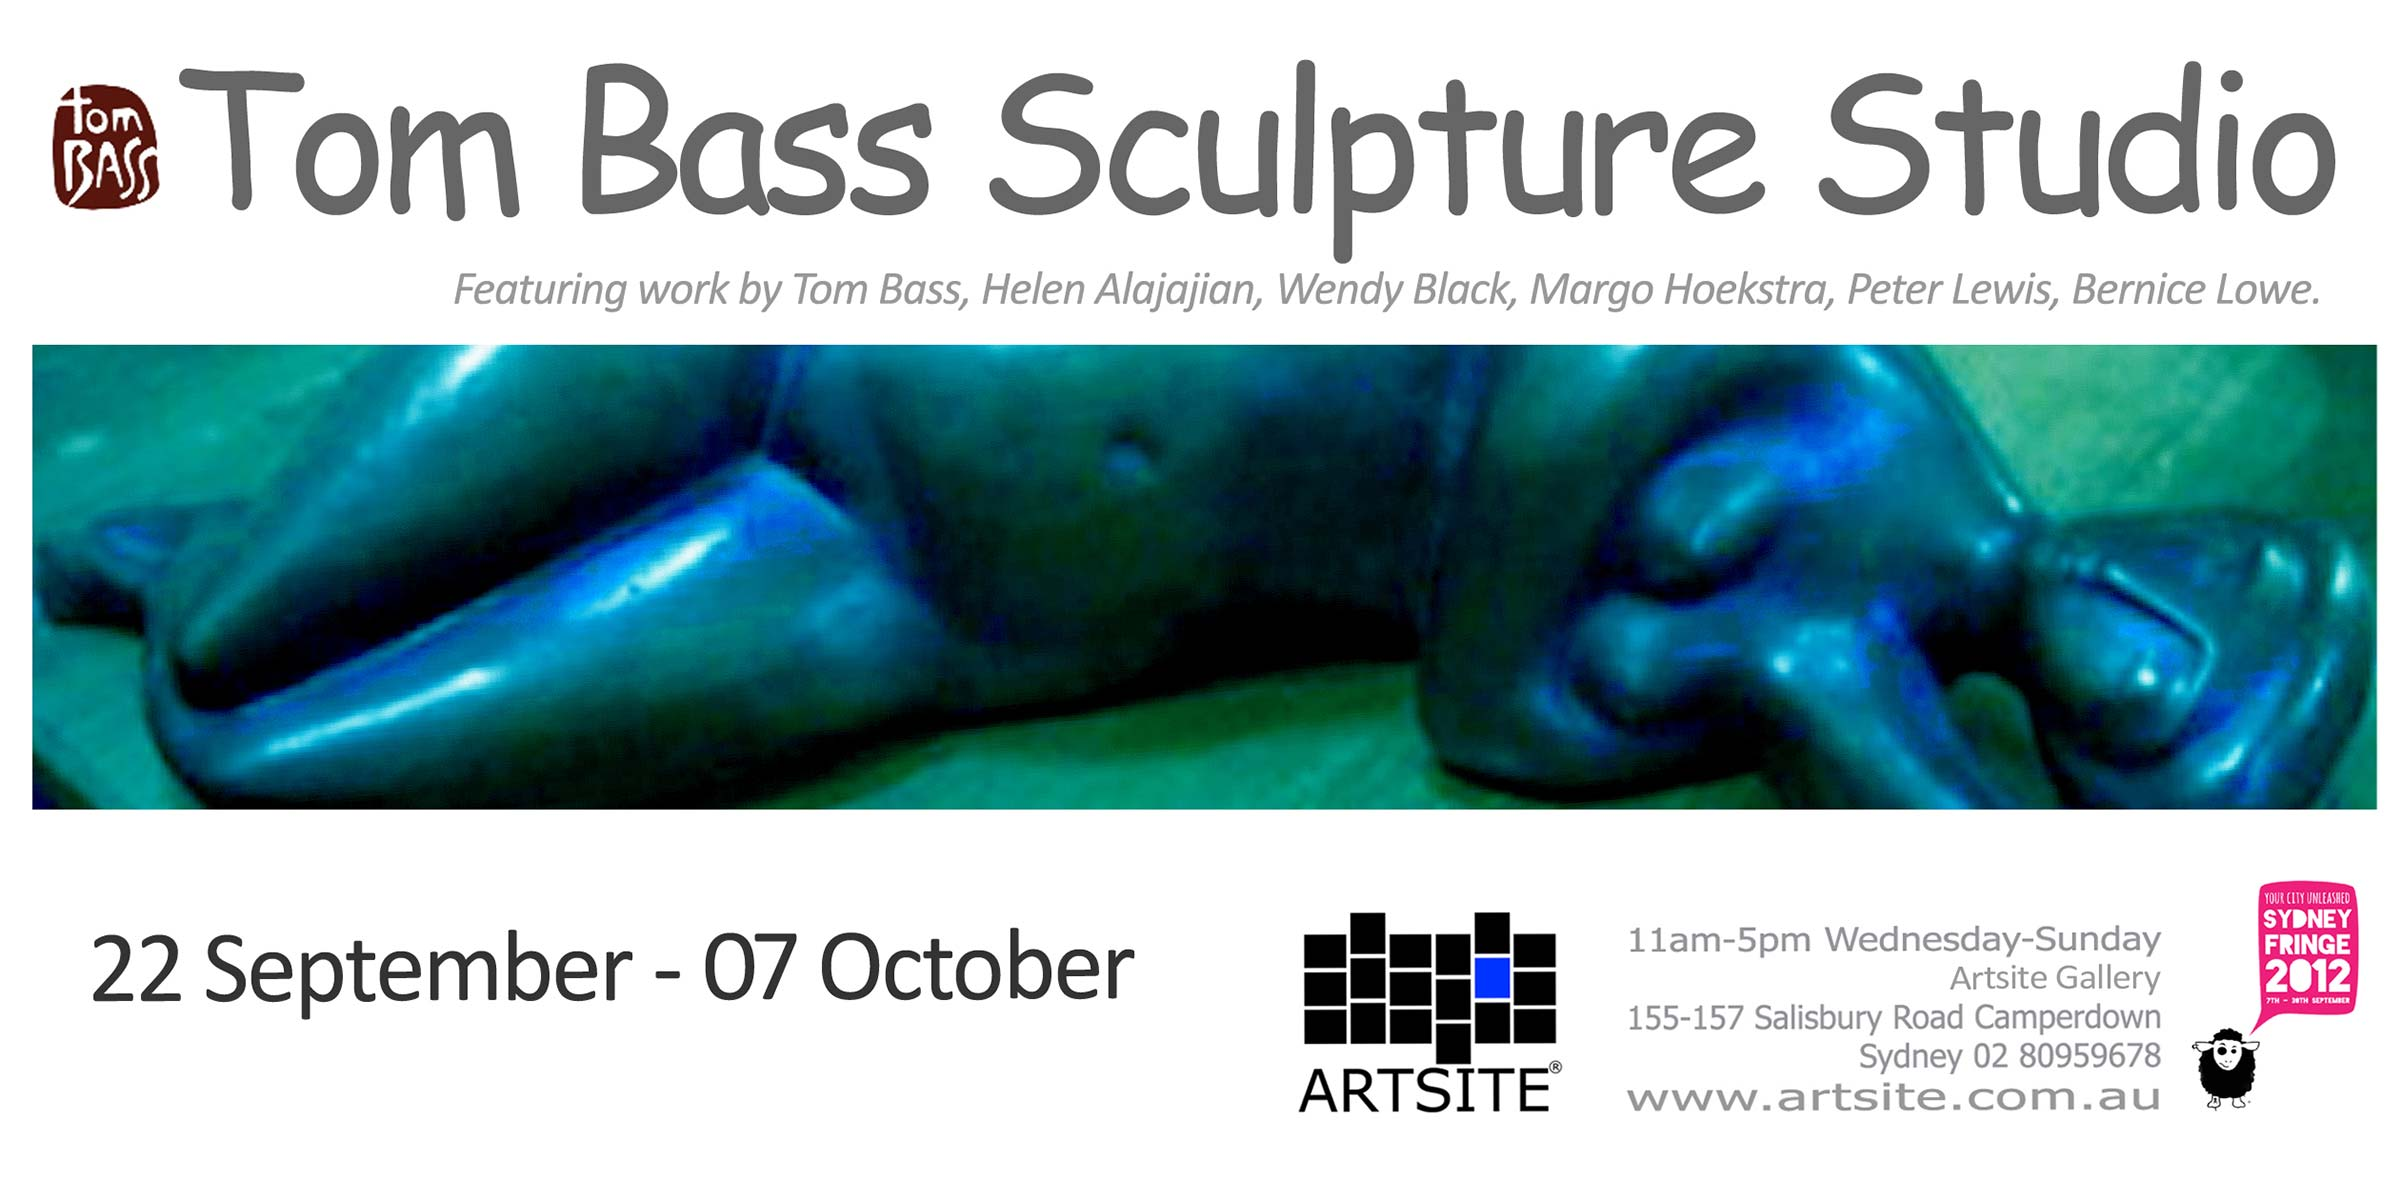 View Exhibition at Artsite Gallery. 22 September-07 October 2012: Works by Tom Bass and Sculptors of the Tom Bass Studio curated by Margo Hoekstra.